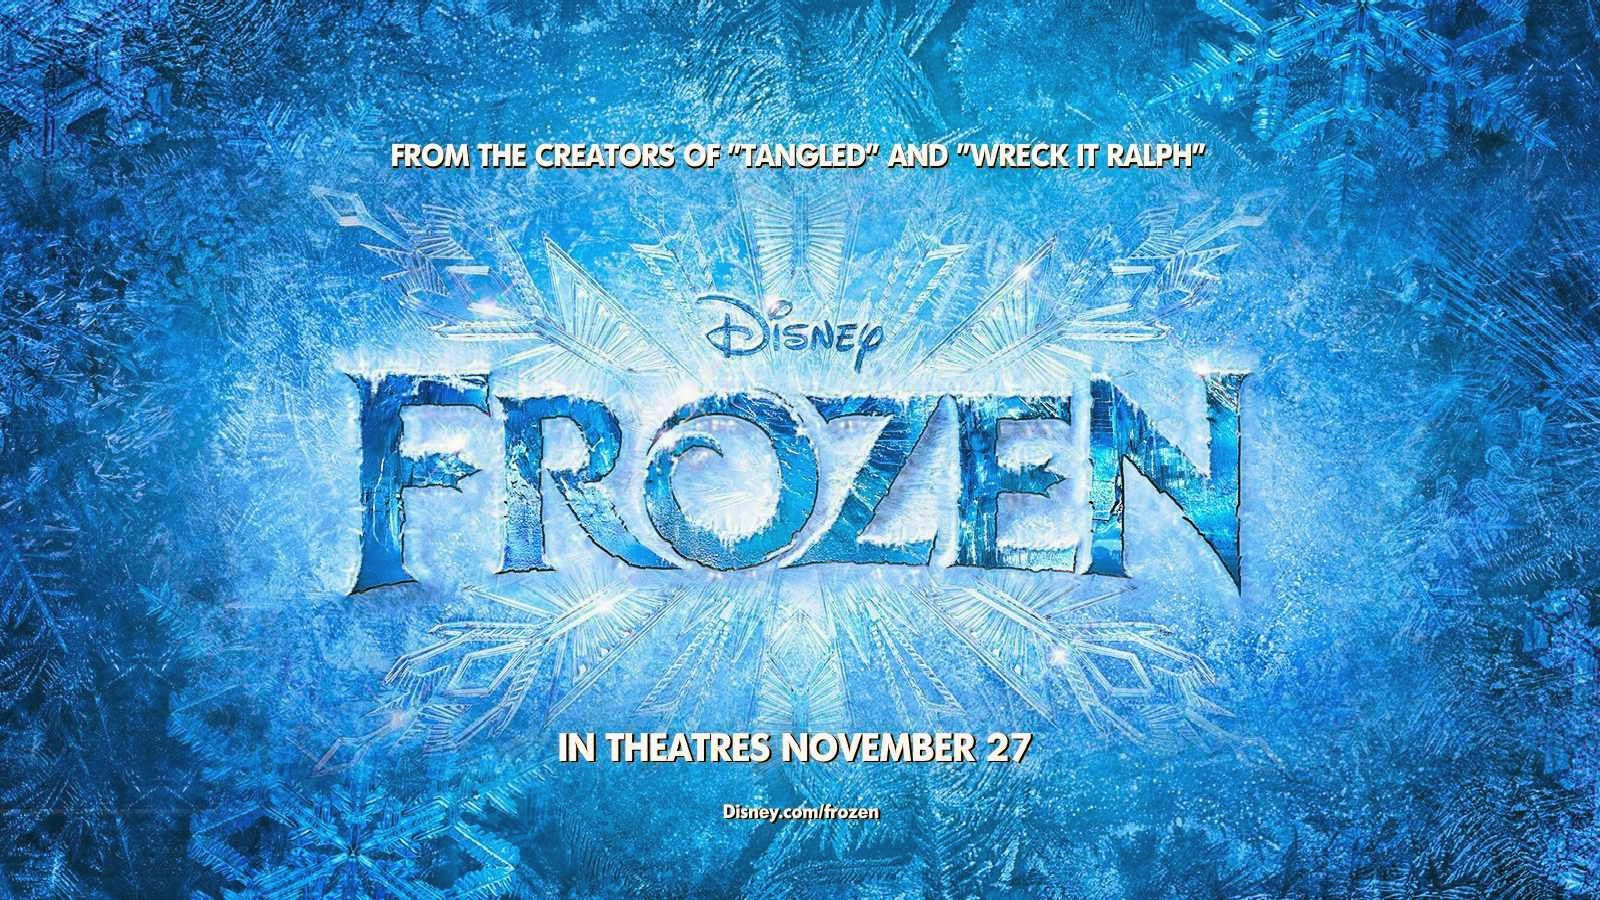 new english moviee 2014 click hear............................. Frozen+eNGLISH+fULL+mOVIE